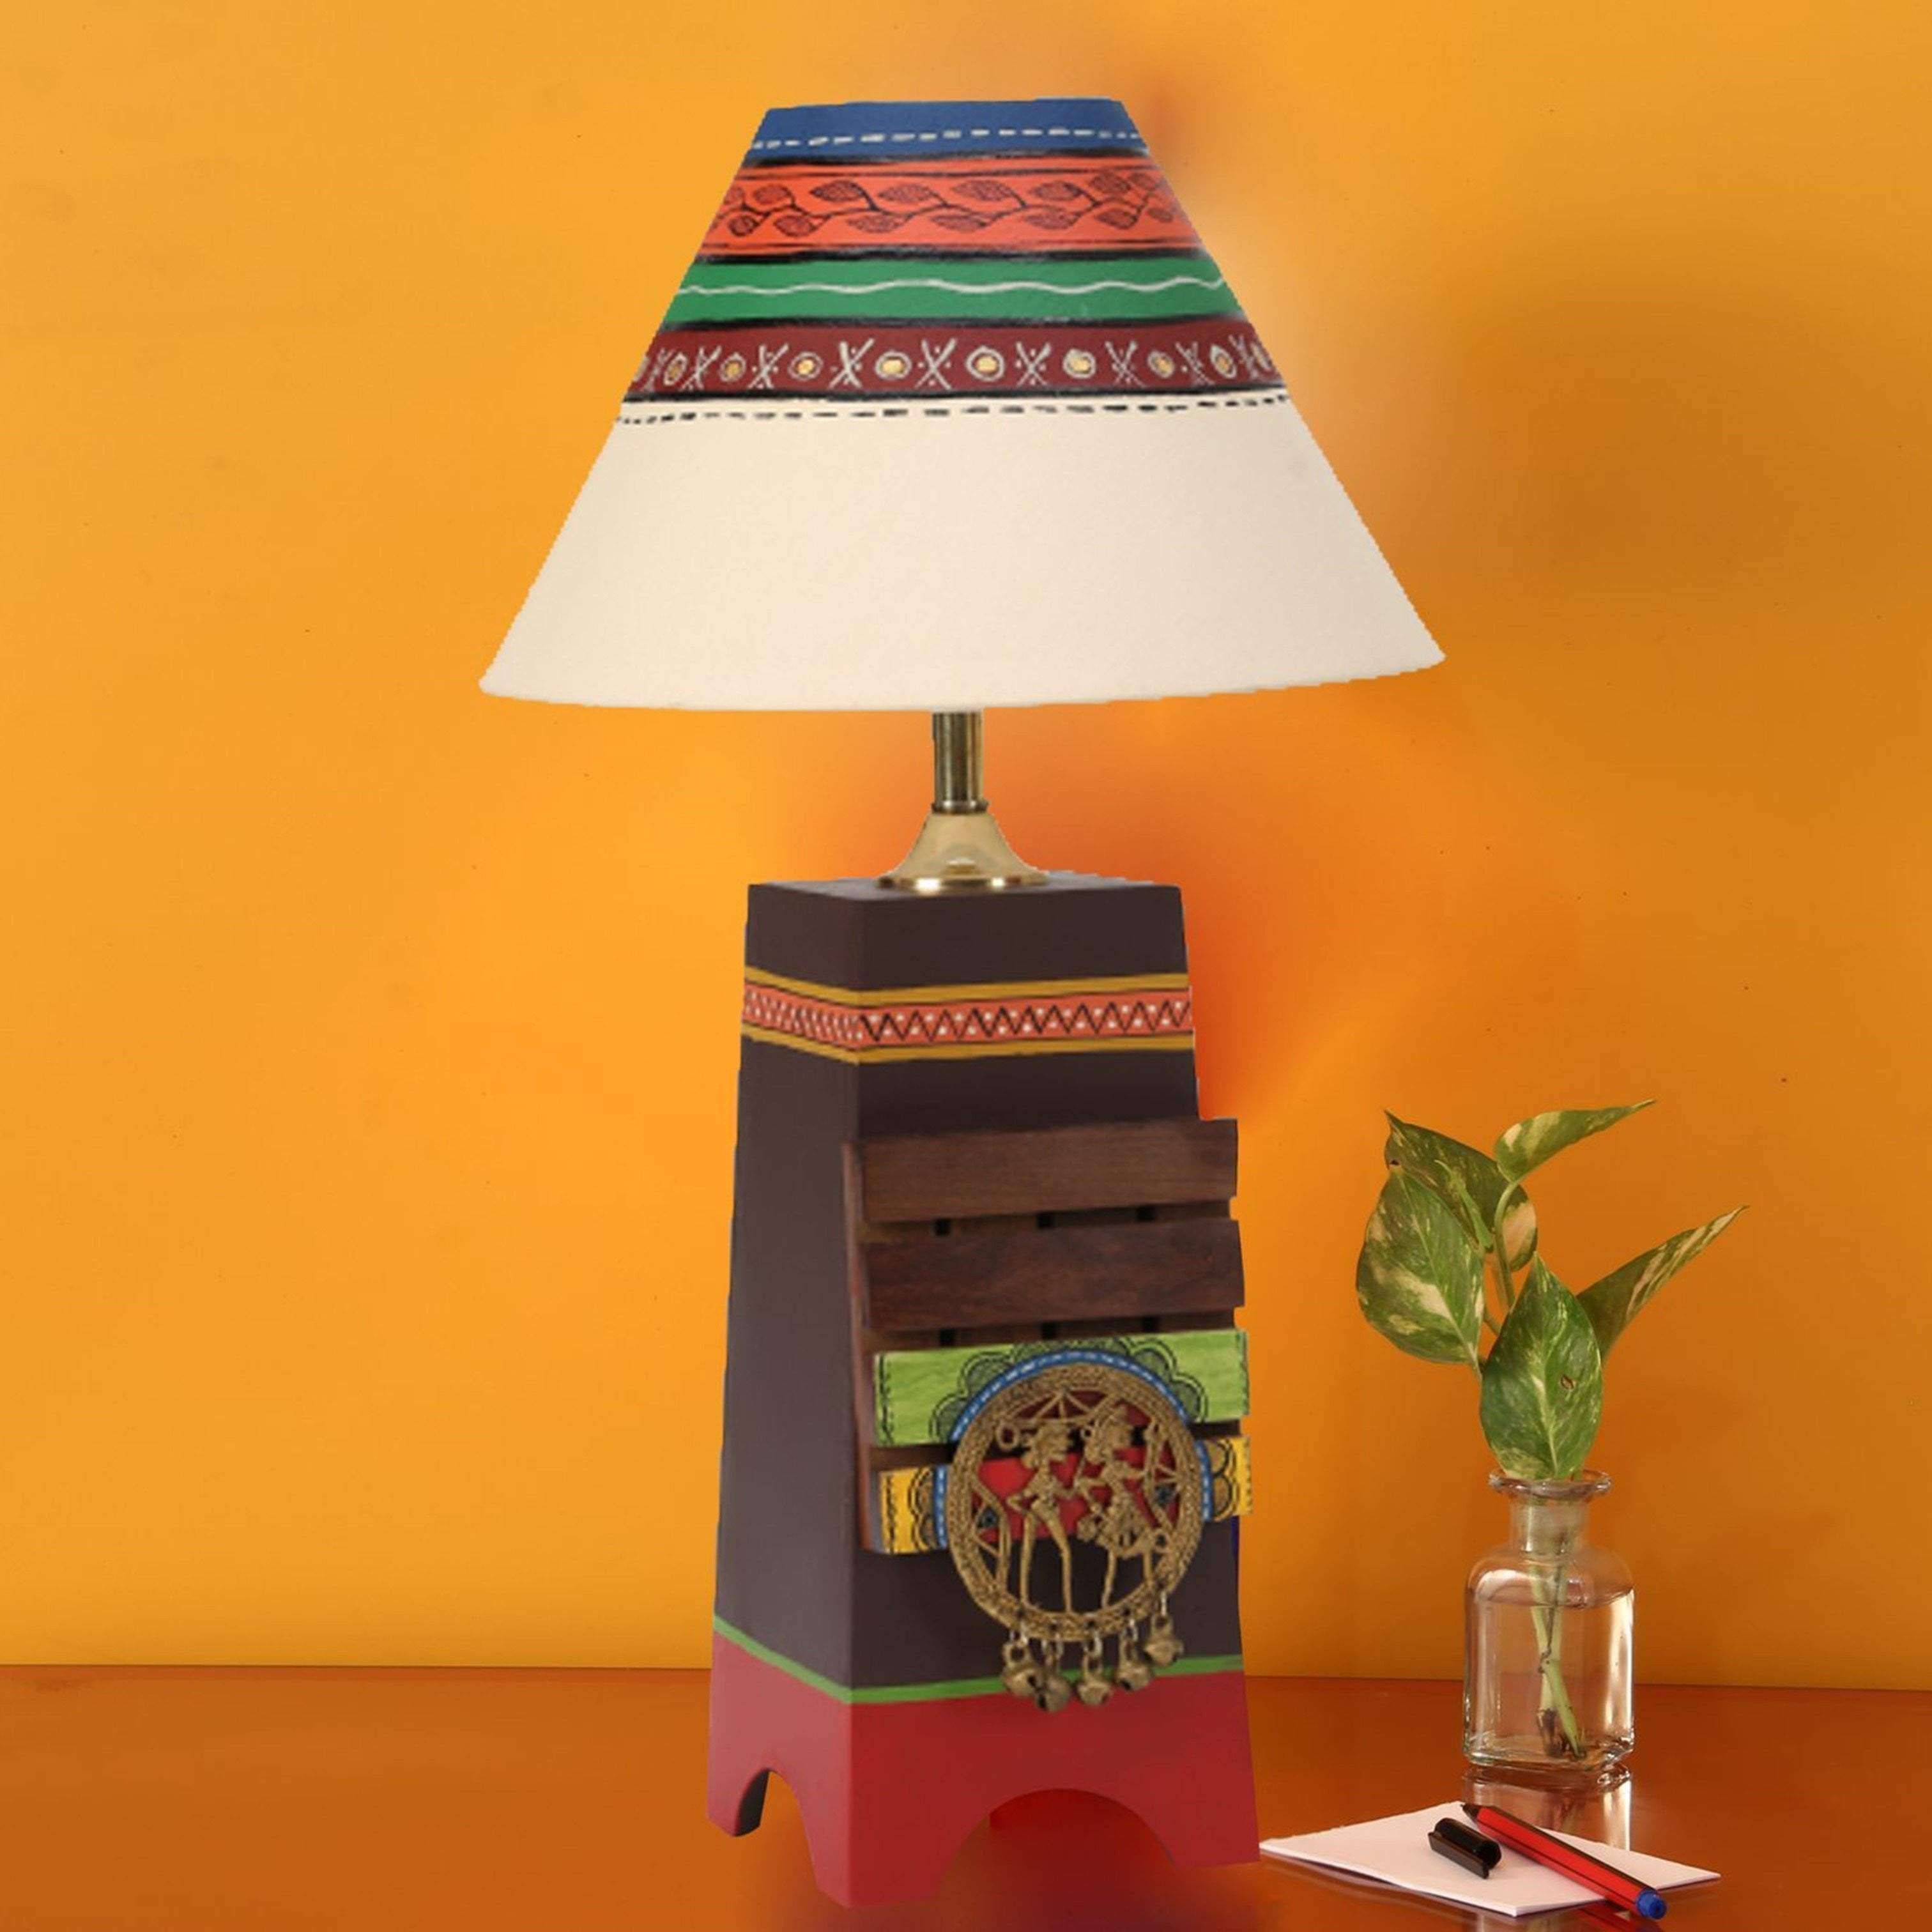 Wooden Table Lamp Home Decorative Table Lamp Bedroom Study Table Lamps For Home Decor Artystagallery